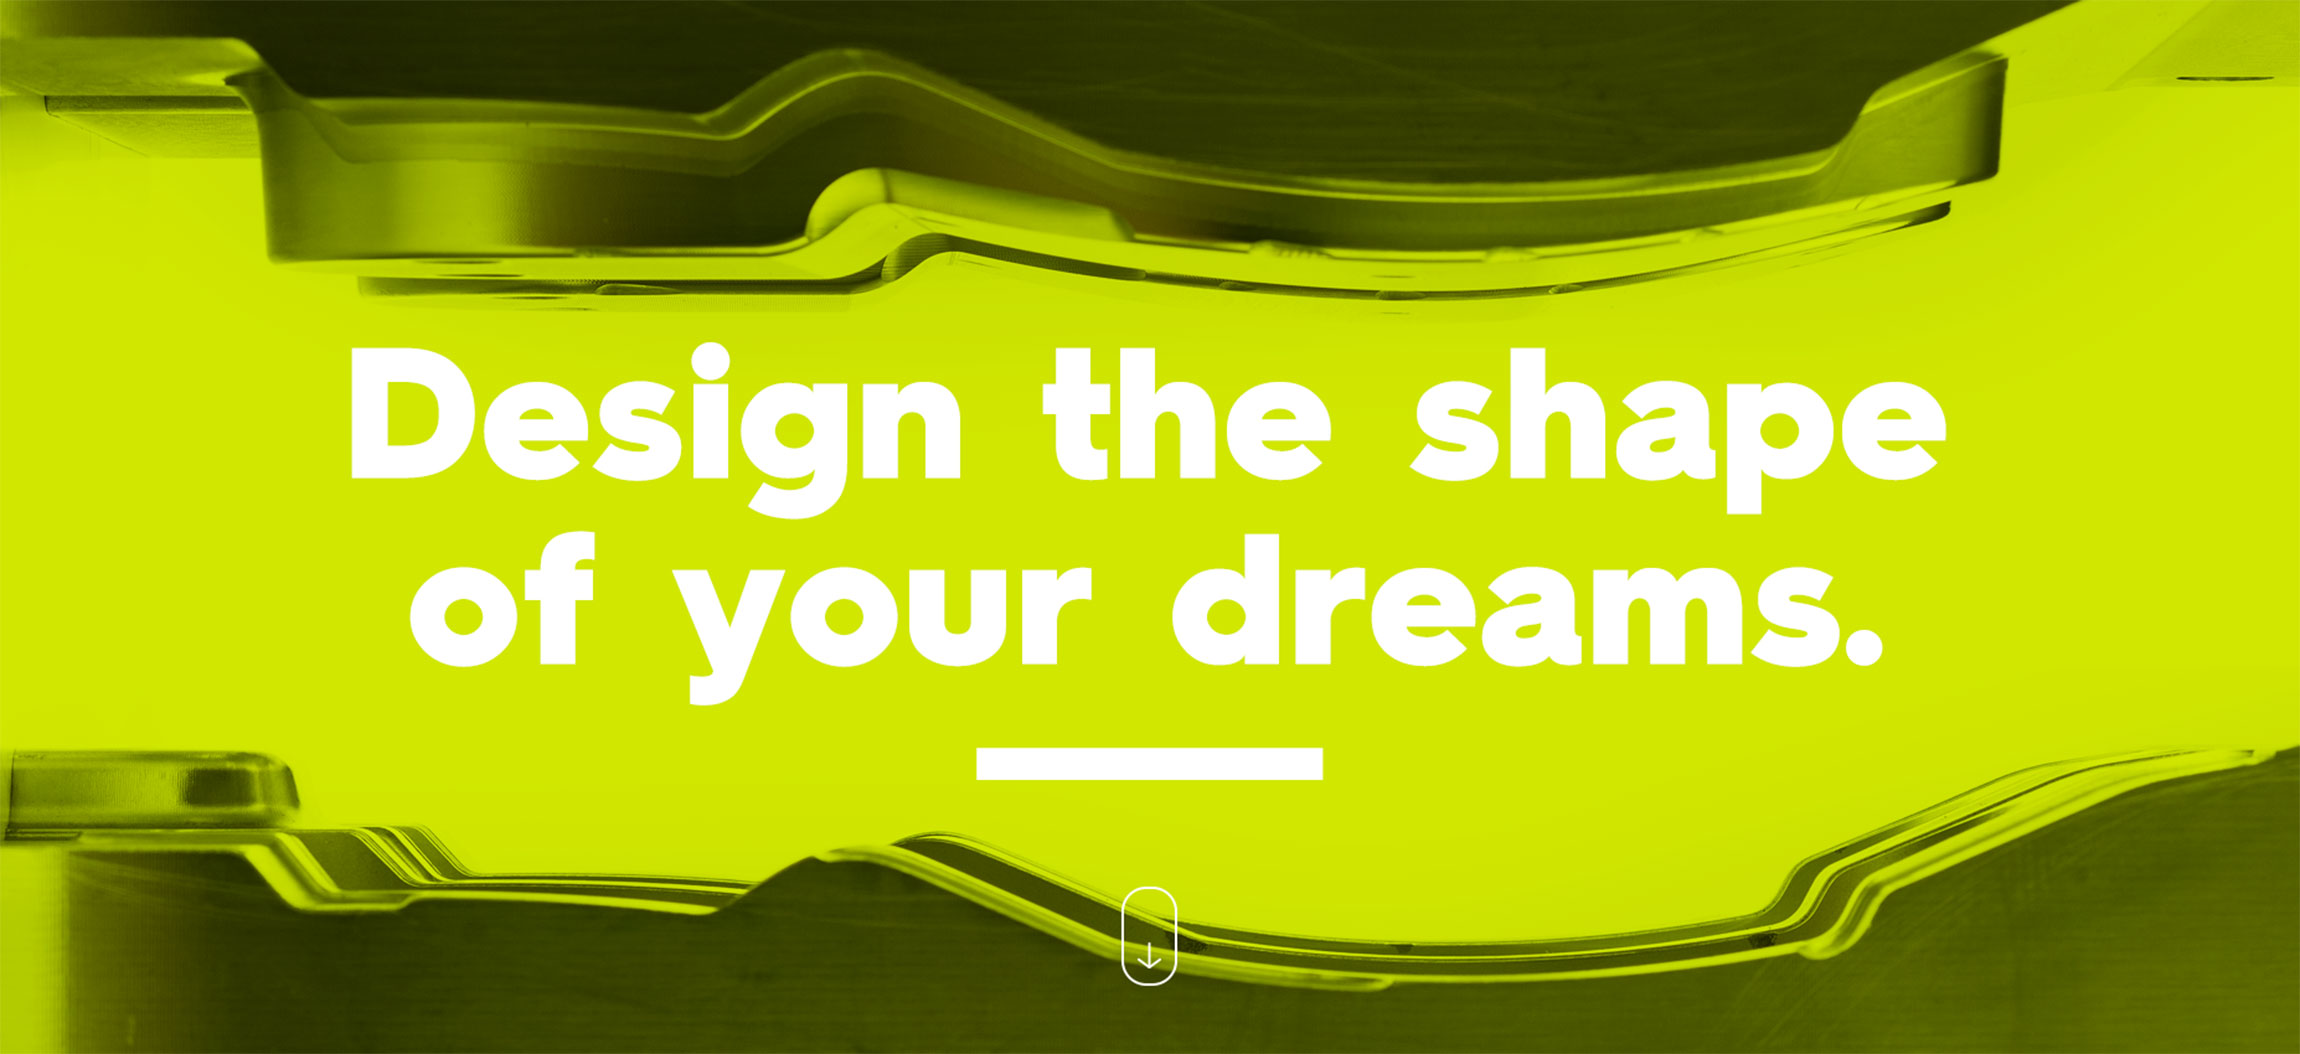 Design the shape of your dreams